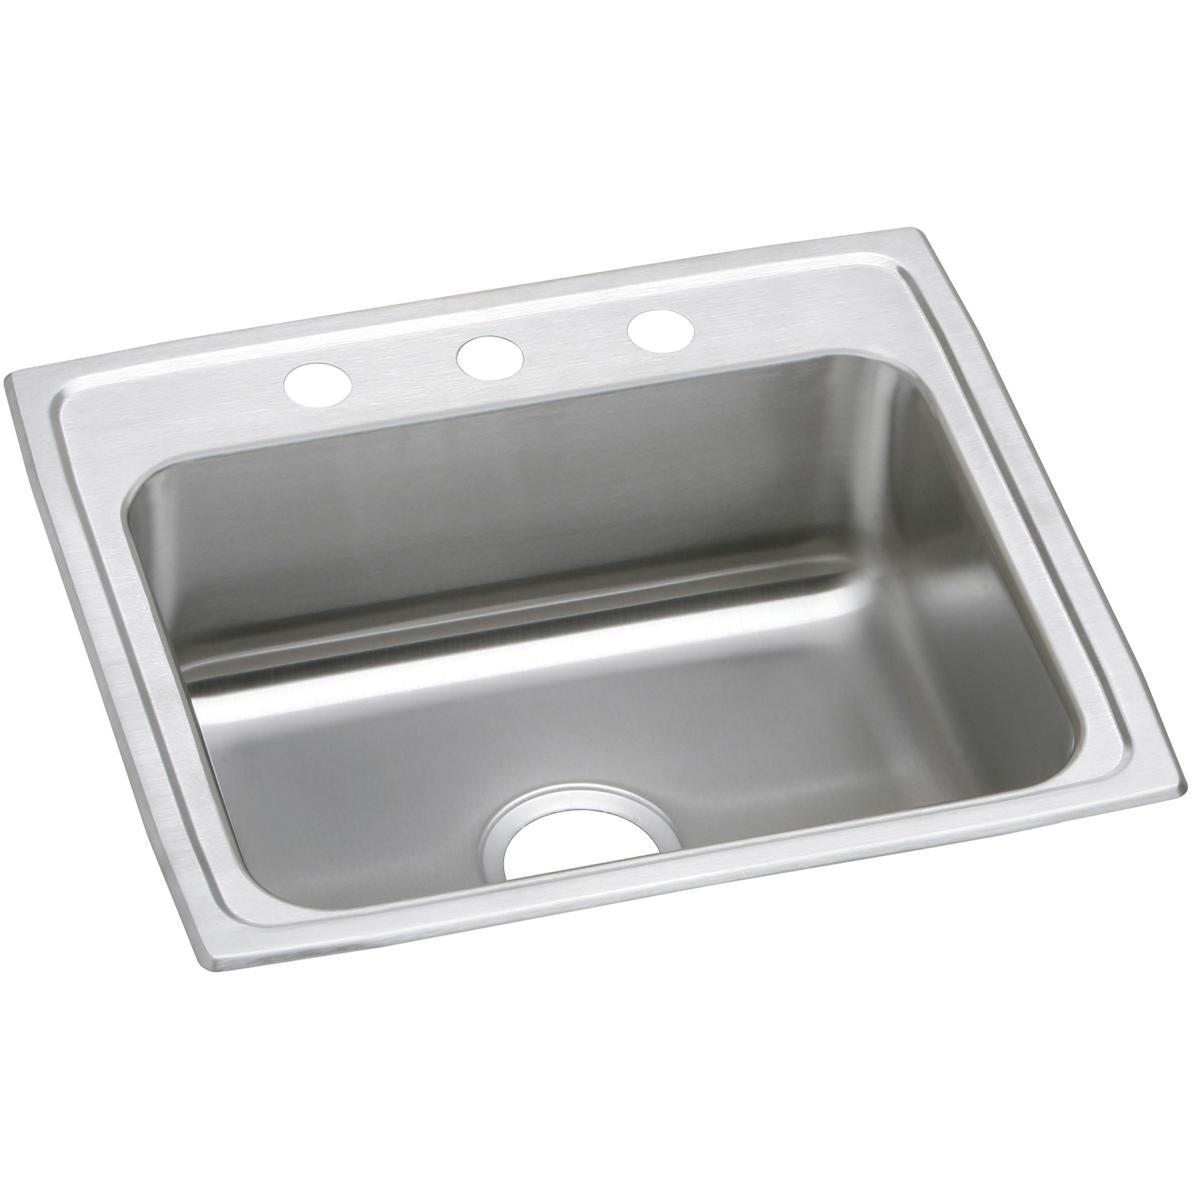 "Elkay Celebrity Stainless Steel 22"" X 19-1/2"" X 7-1/8"", Single Bowl Drop-in Sink"